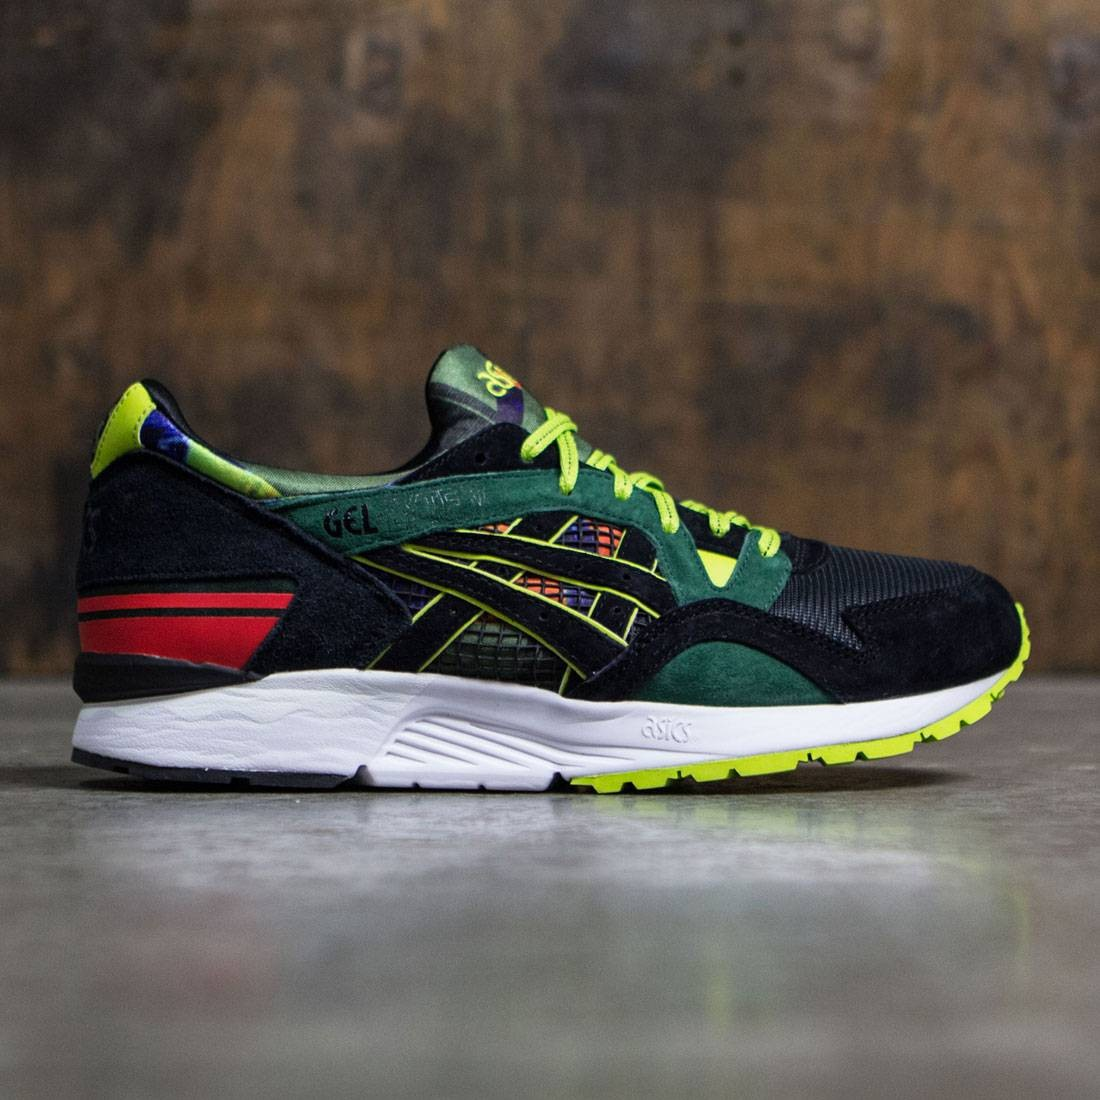 reputable site 0de64 122bf Asics x Mita x Whiz Limited Men Gel-Lyte V - Recognize (black / green /  yellow)